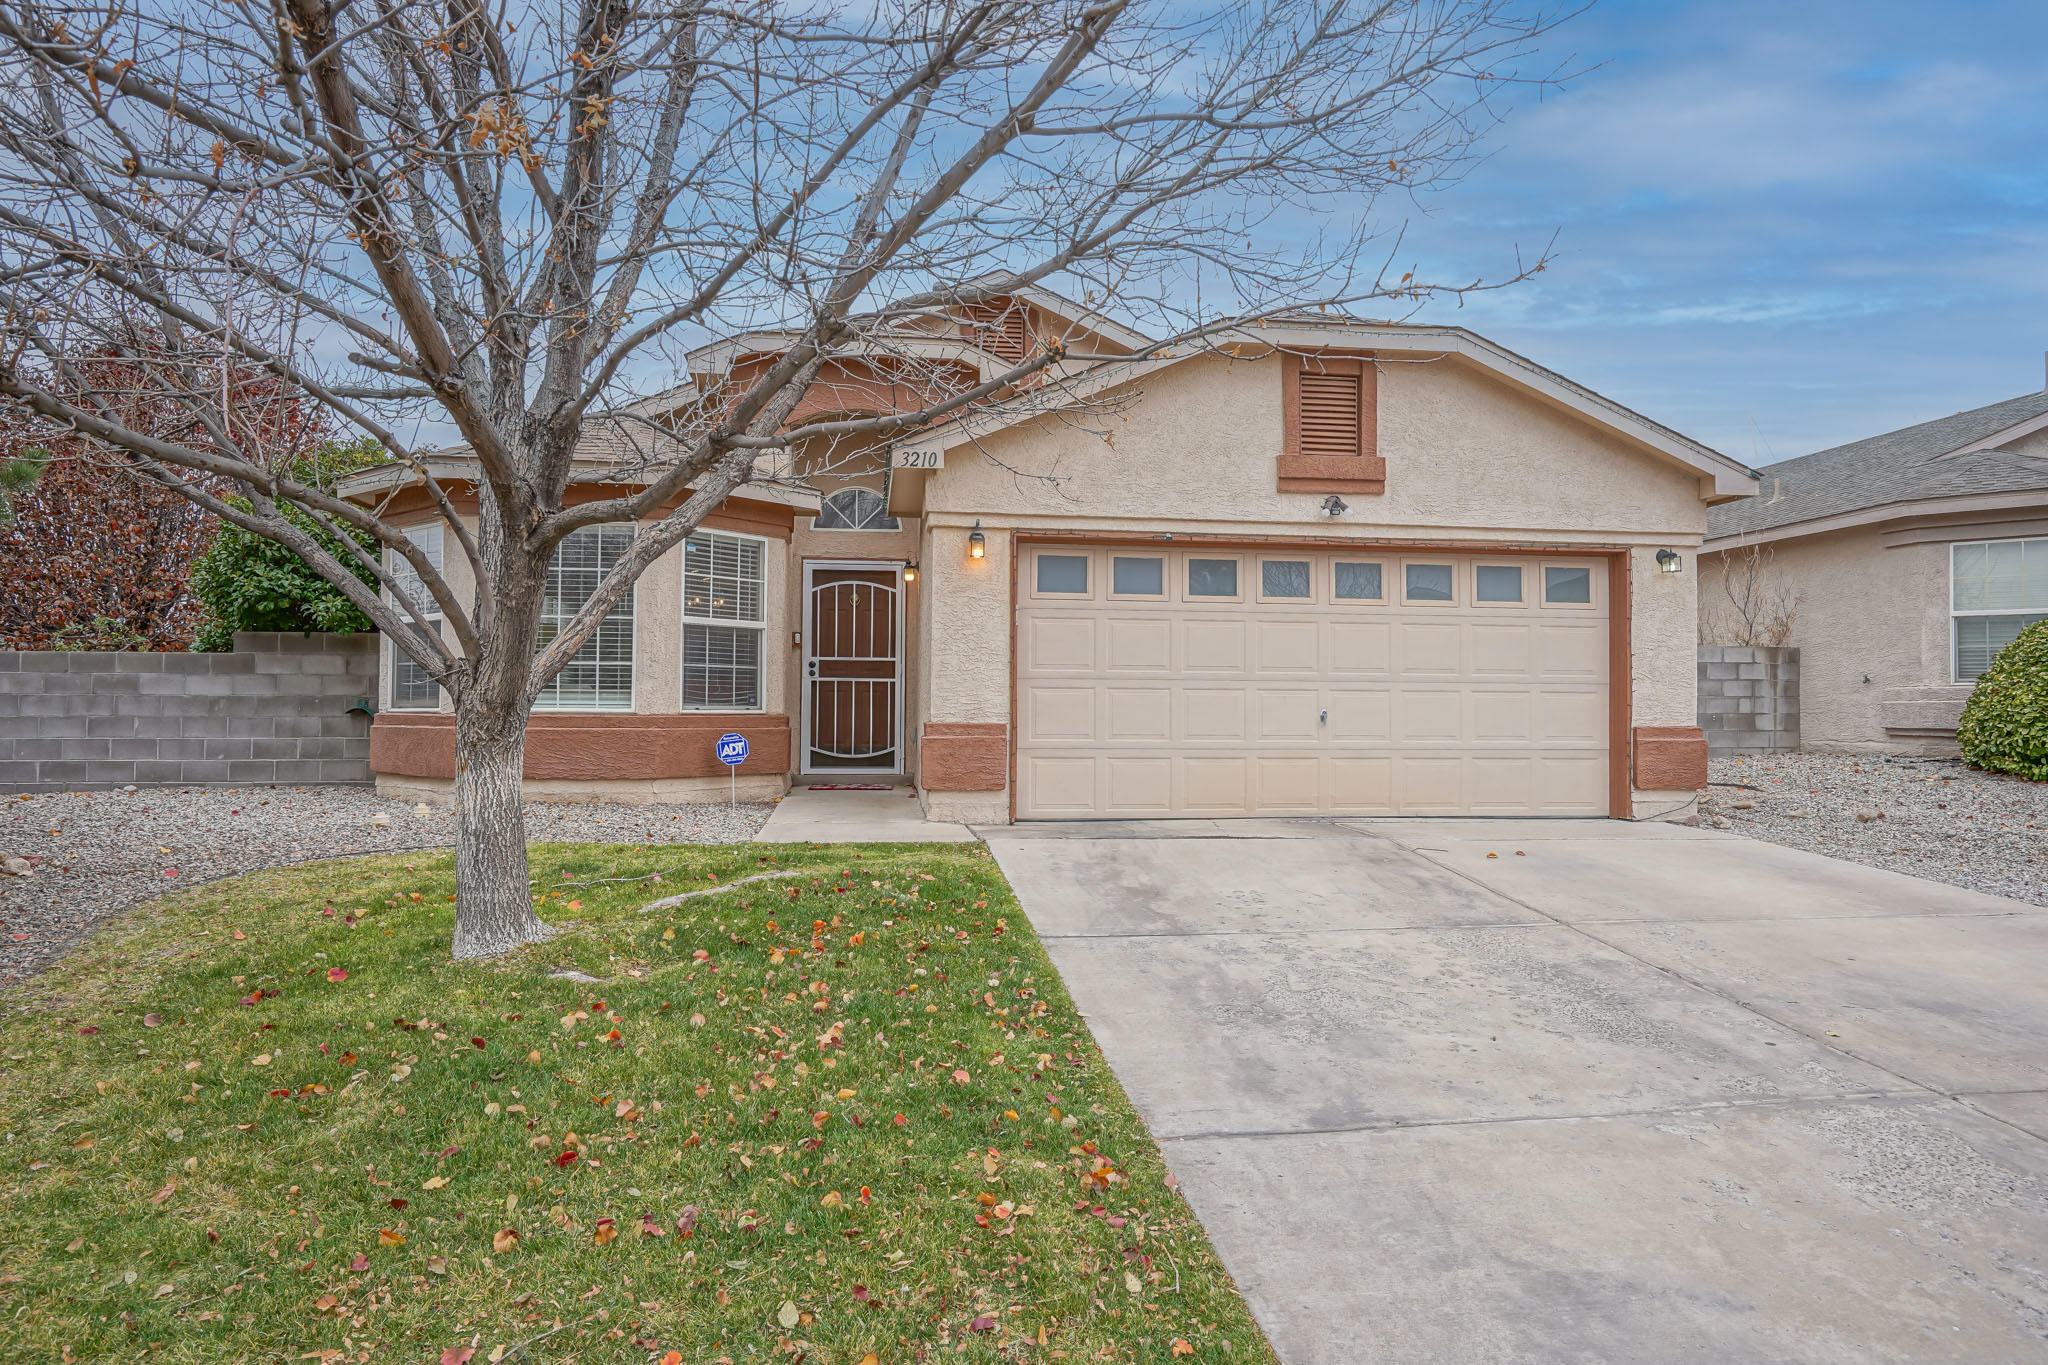 ONE YEAR OLD ROOF!!!  This 3 bedroom home with its open concept and vaulted ceilings, feels as spacious as it is beautiful.  Warm laminate wood floors greet you as you enter the formal living/dining space.  A nicely upgraded kitchen with decorative tile backsplash and an island are the highlights of the kitchen.  All kitchen stainless steel appliances convey to include built-in microwave and refrigerator.   The second living room/family room has an inviting gas fireplace with beautiful stone-front  surround.  A large backyard secured behind a fence with double-gate SIDE-YARD ACCESS and concrete pad on a fully landscaped, oversized (almost 1/4 acre) CORNER lot complete the amenities of this well thought-out home.  The HOA waters and maintains the front landscaping.